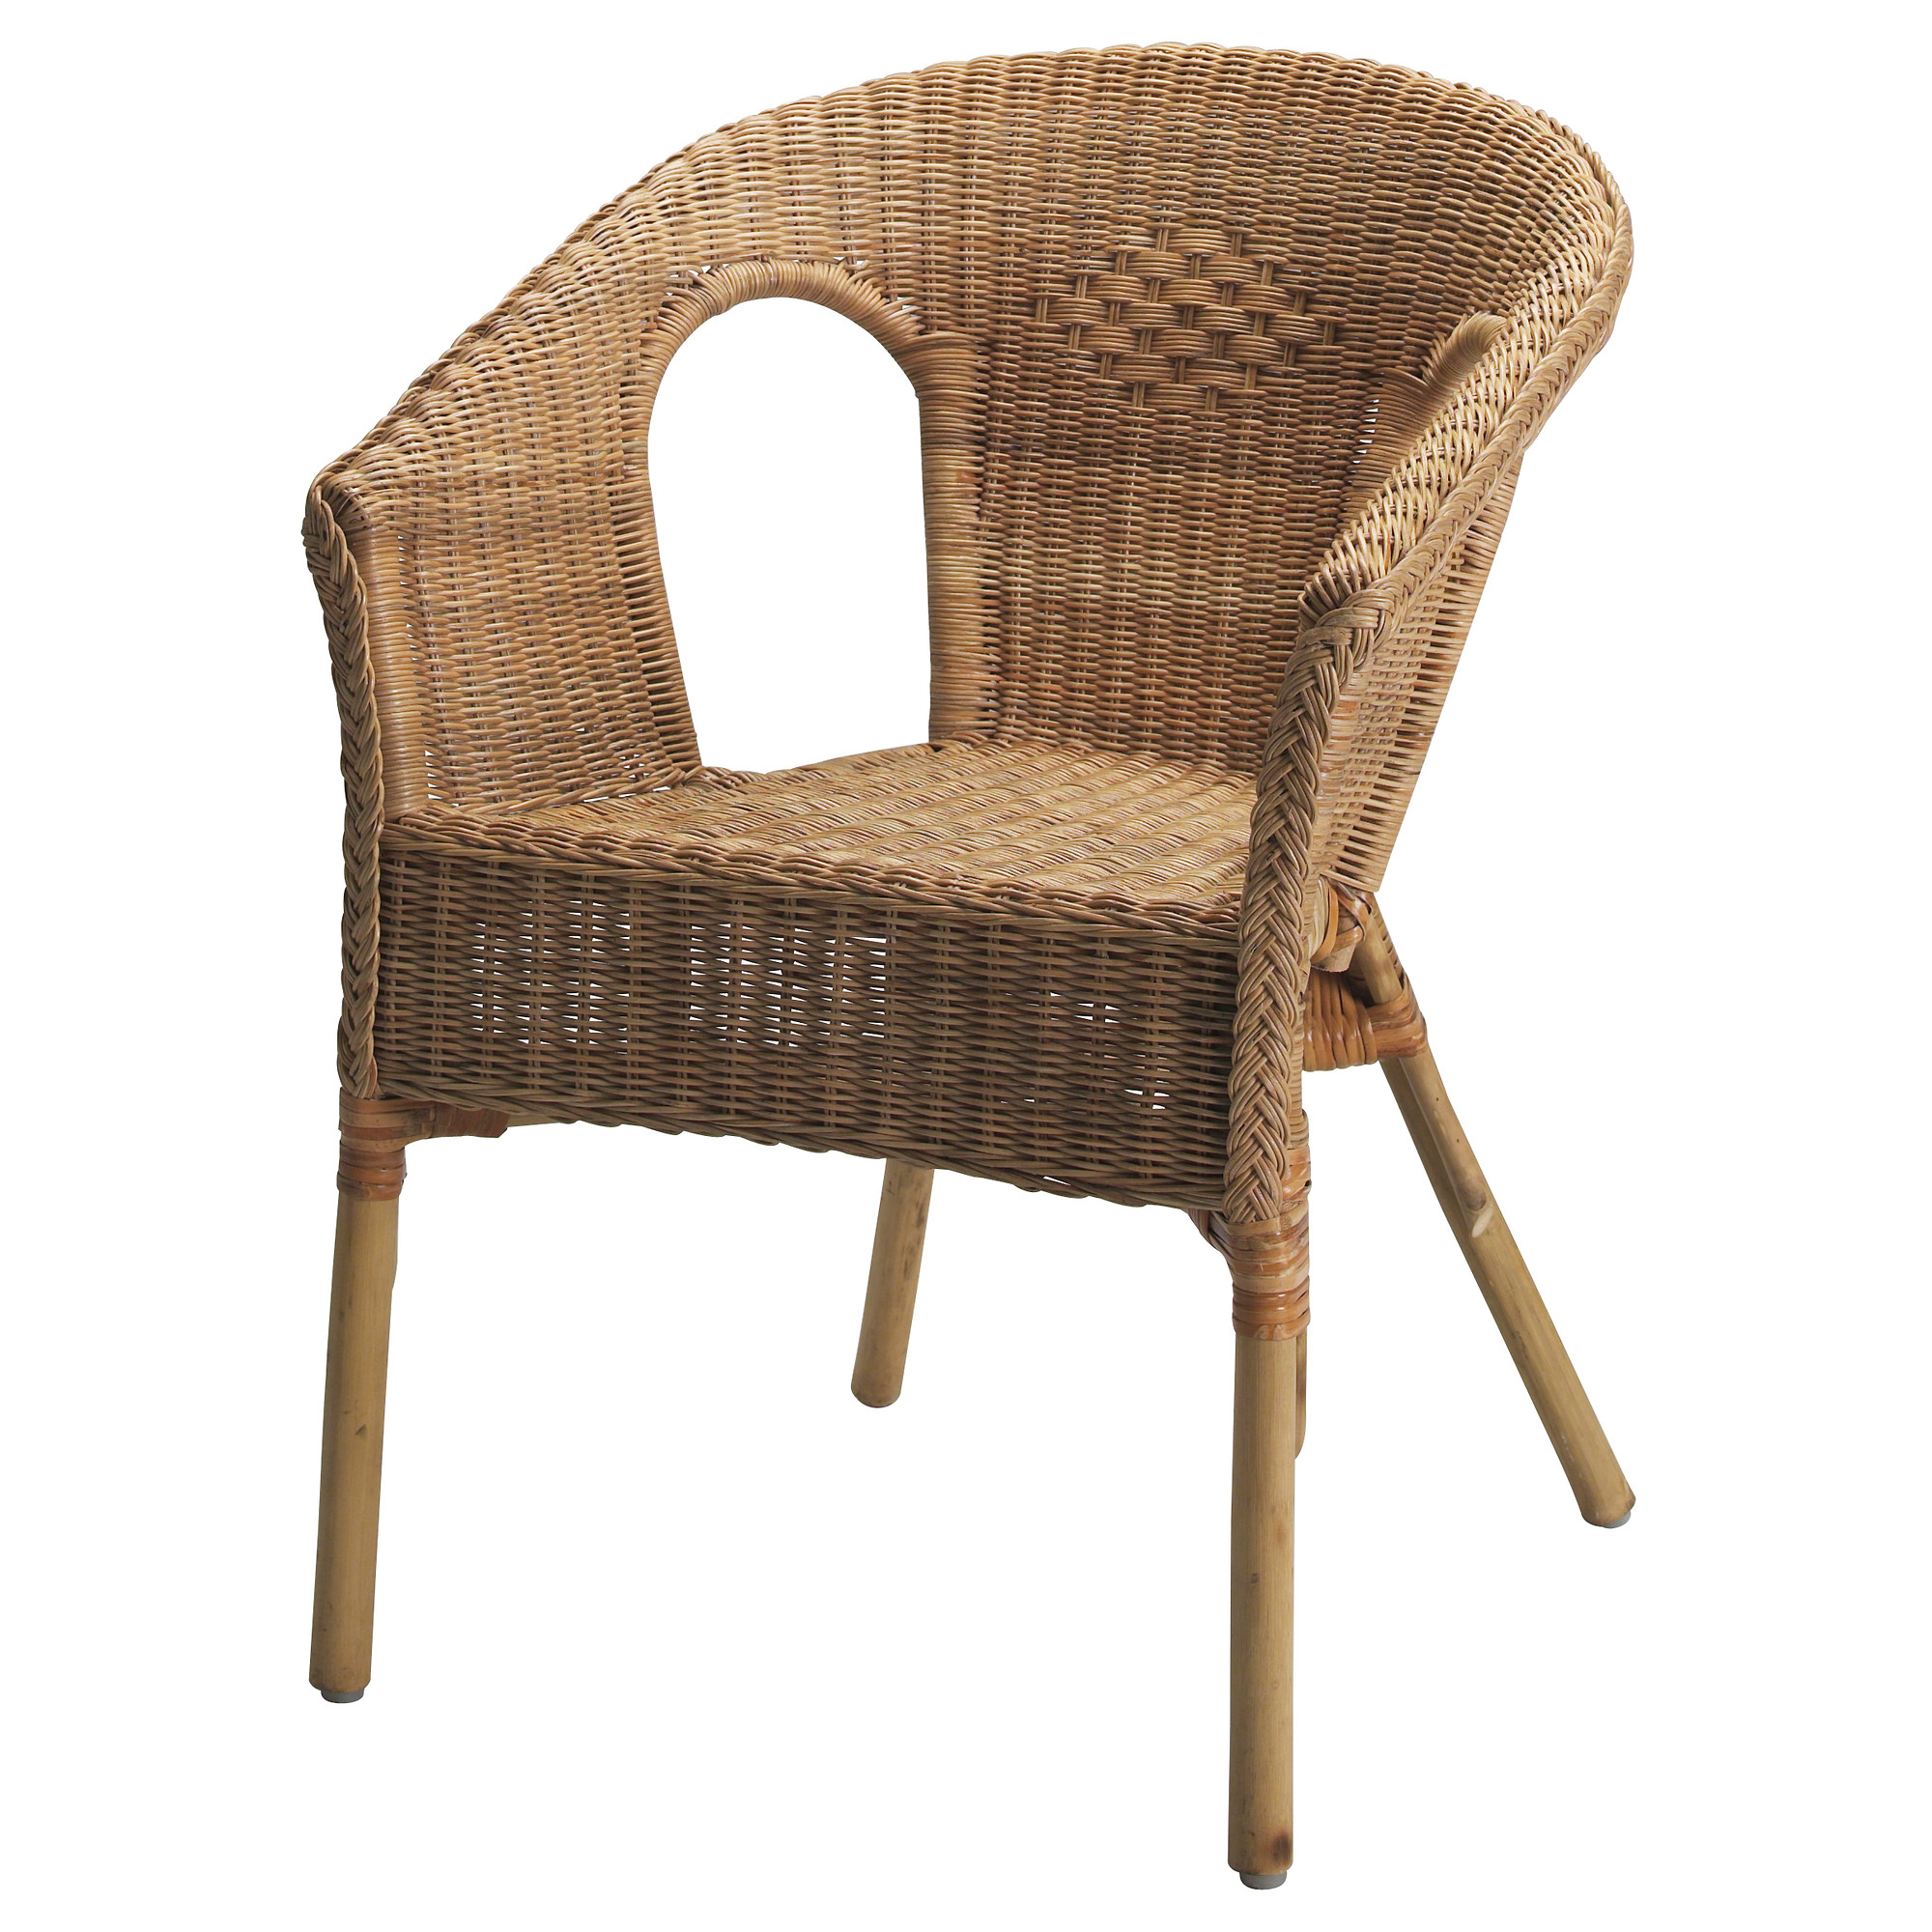 wicker chairs agen armchair - ikea PZKGJLS